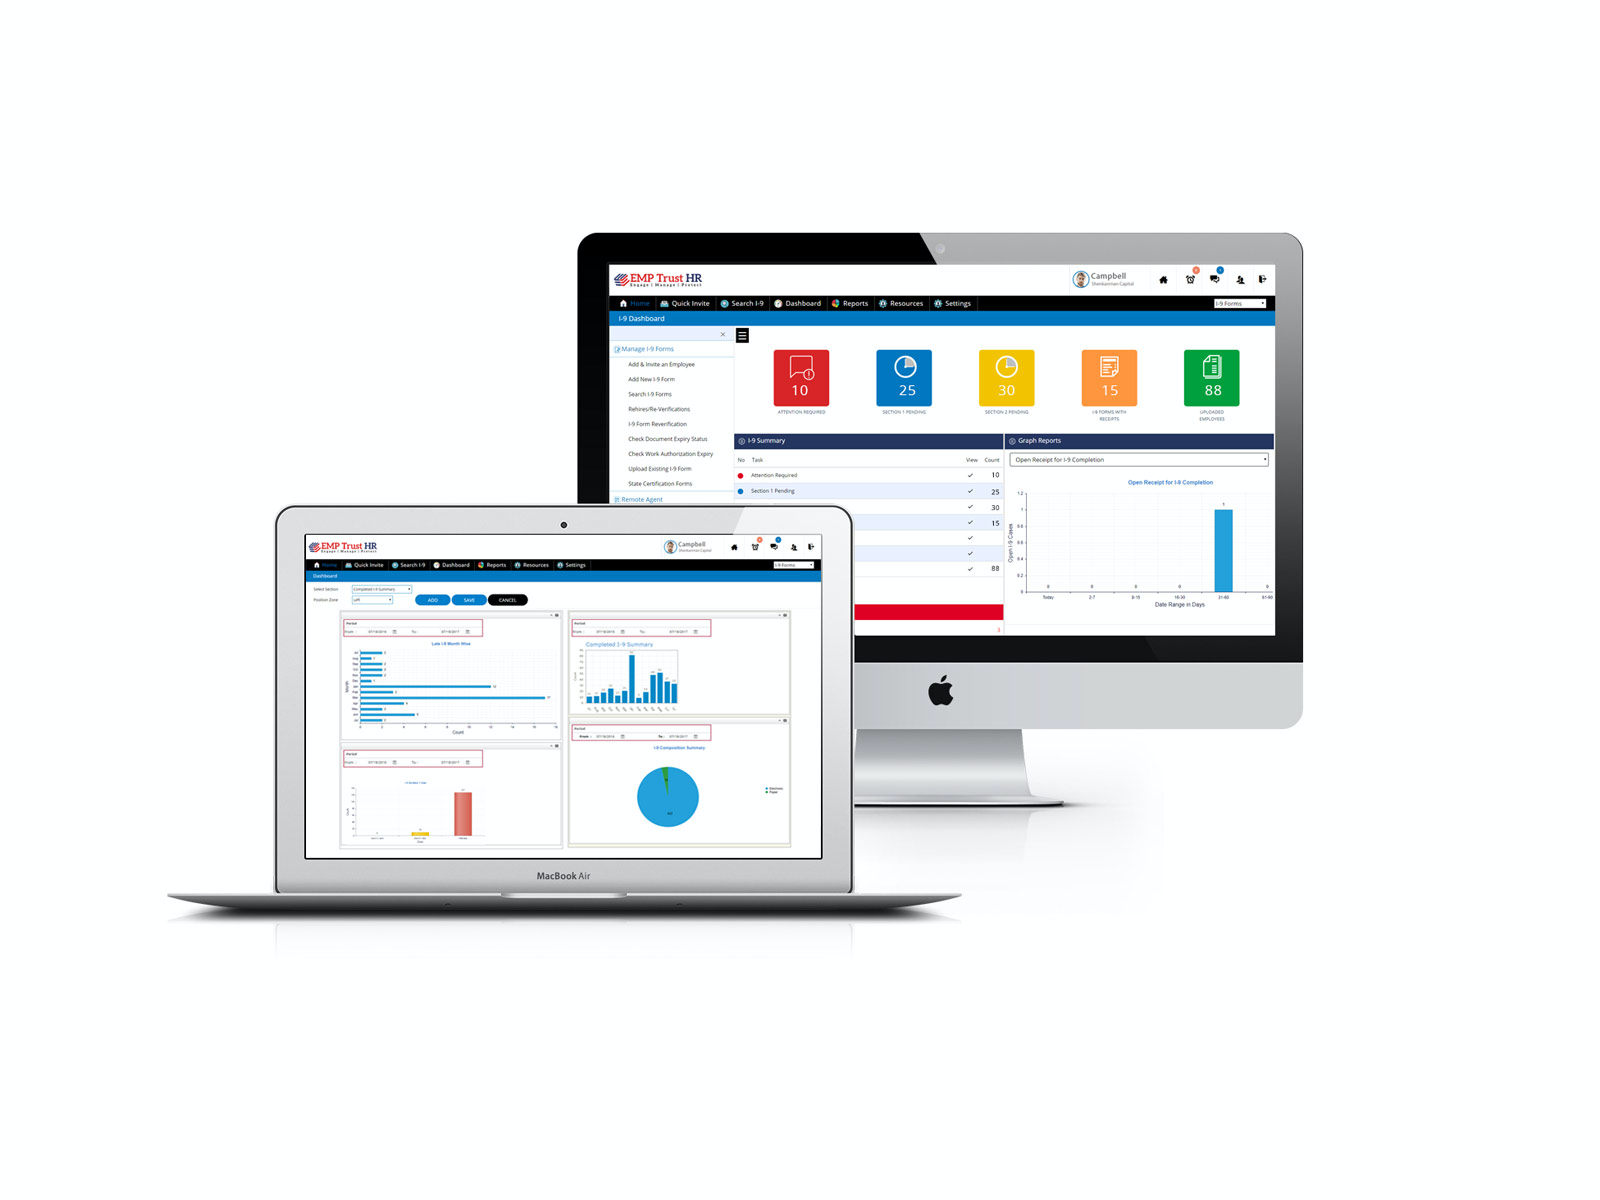 Create your personalized dashboards to focus on your key events and tasks